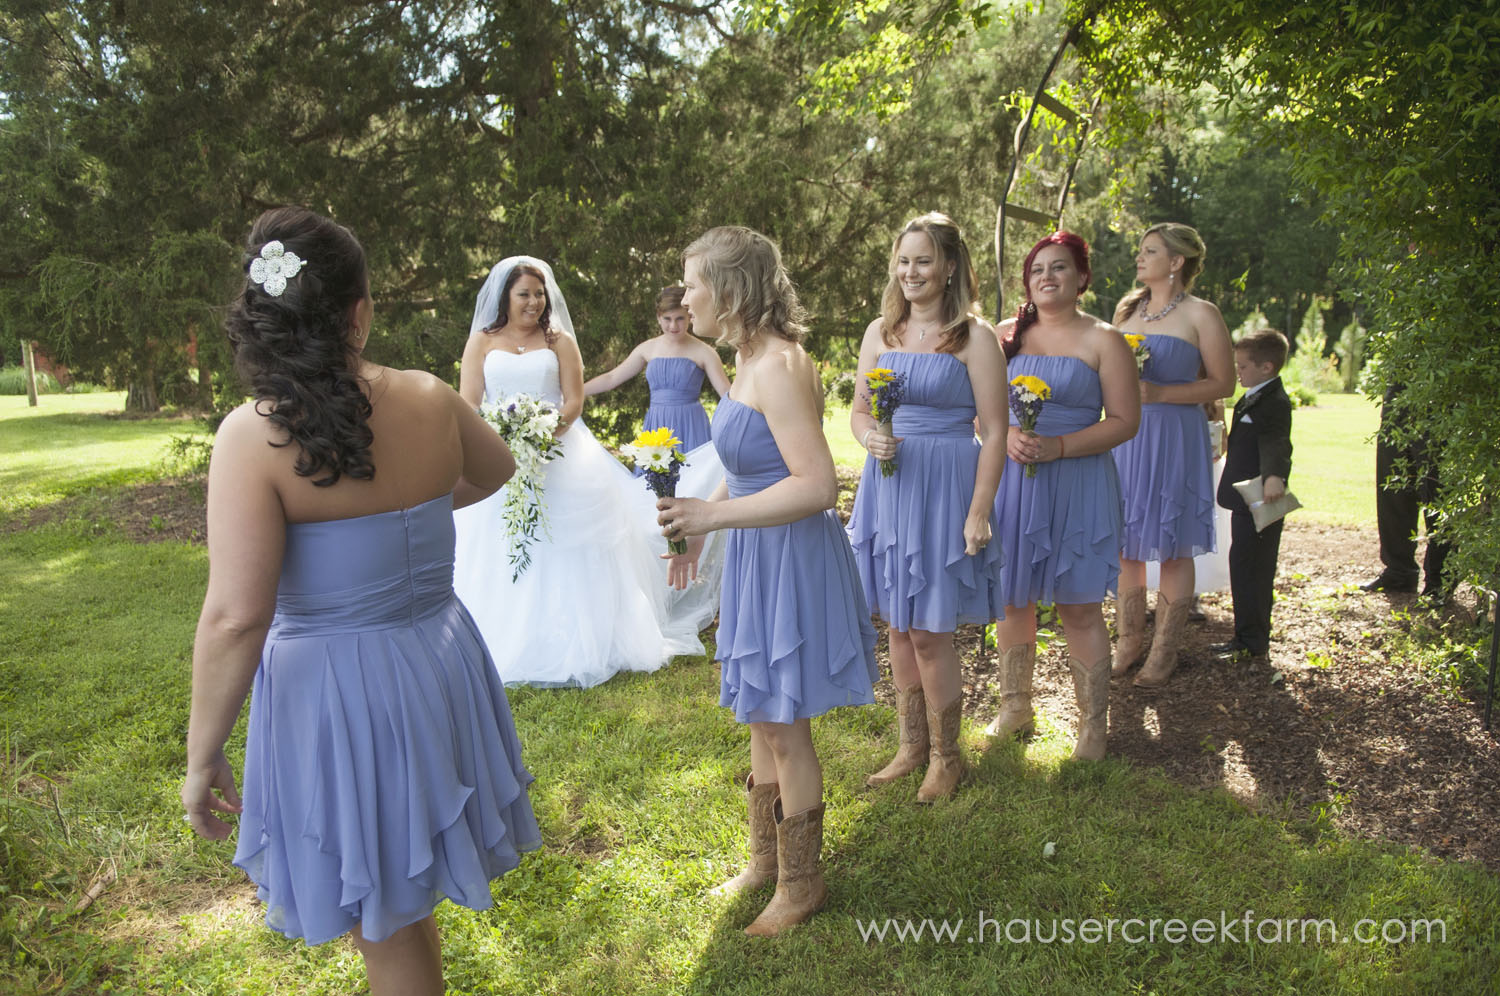 bridesmaids-at-farm-wedding-a-photo-by-ashley-0422.jpg